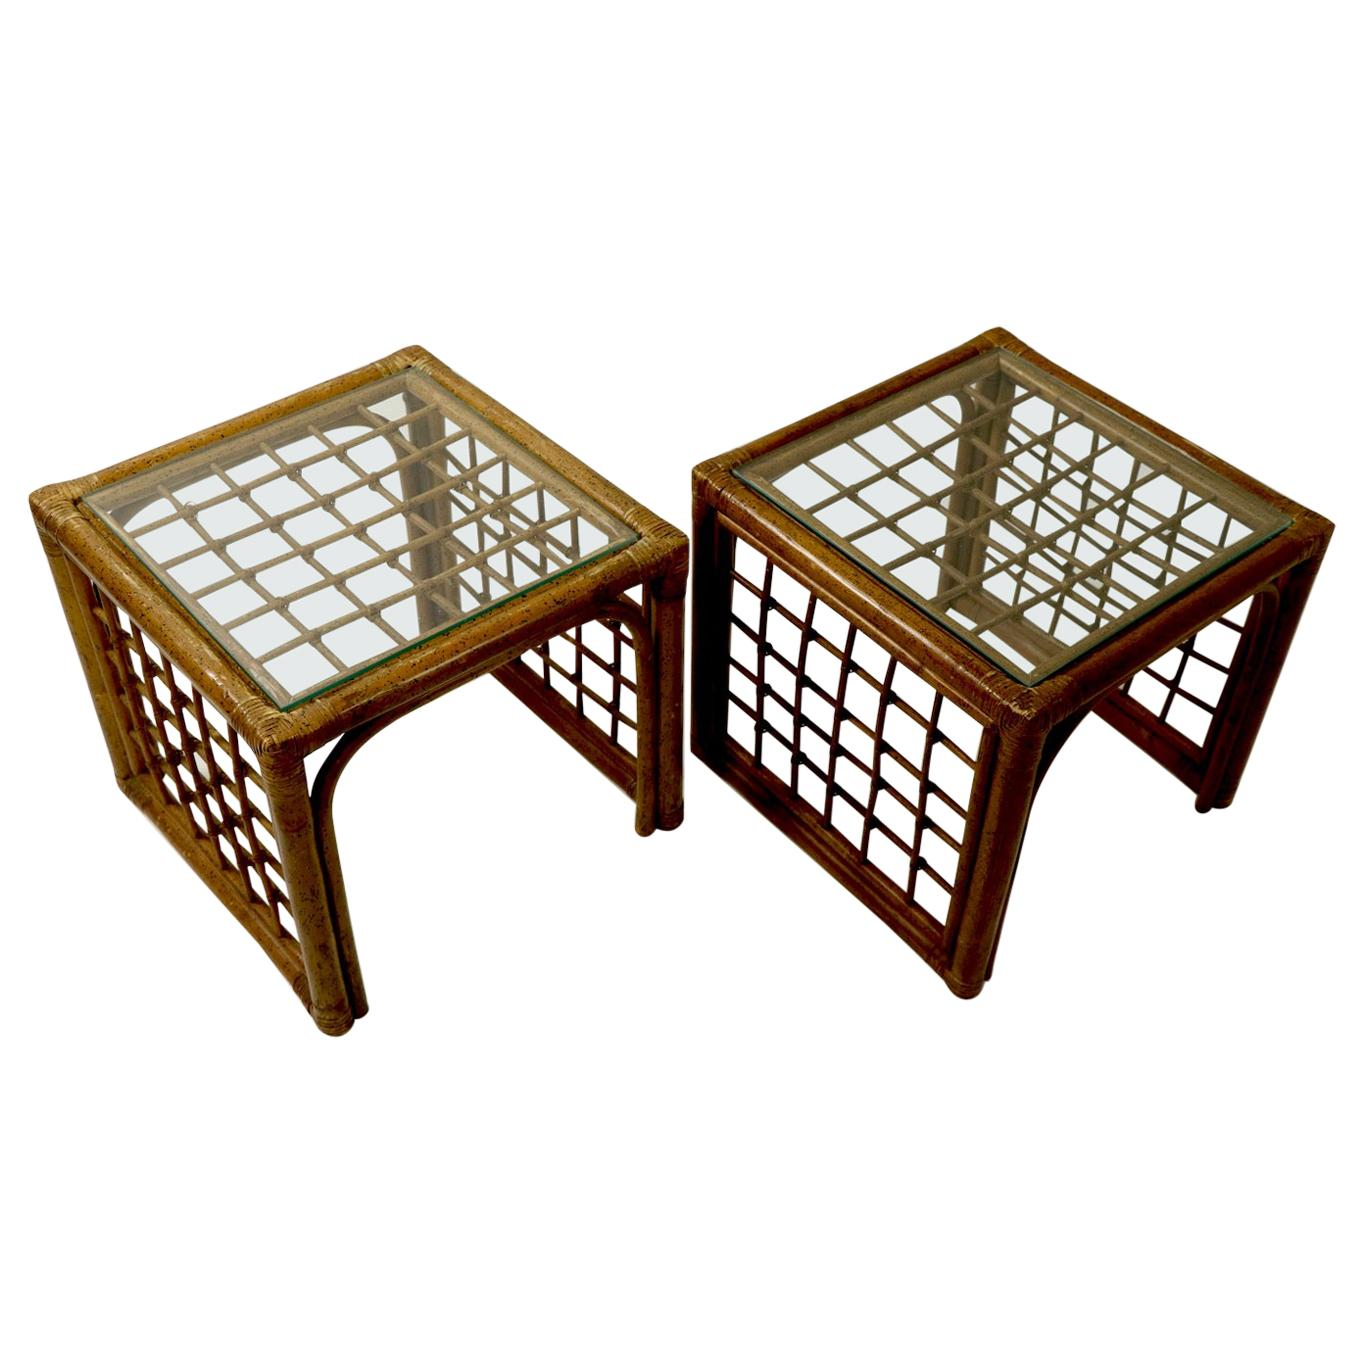 Pair of Bamboo and Glass Tables